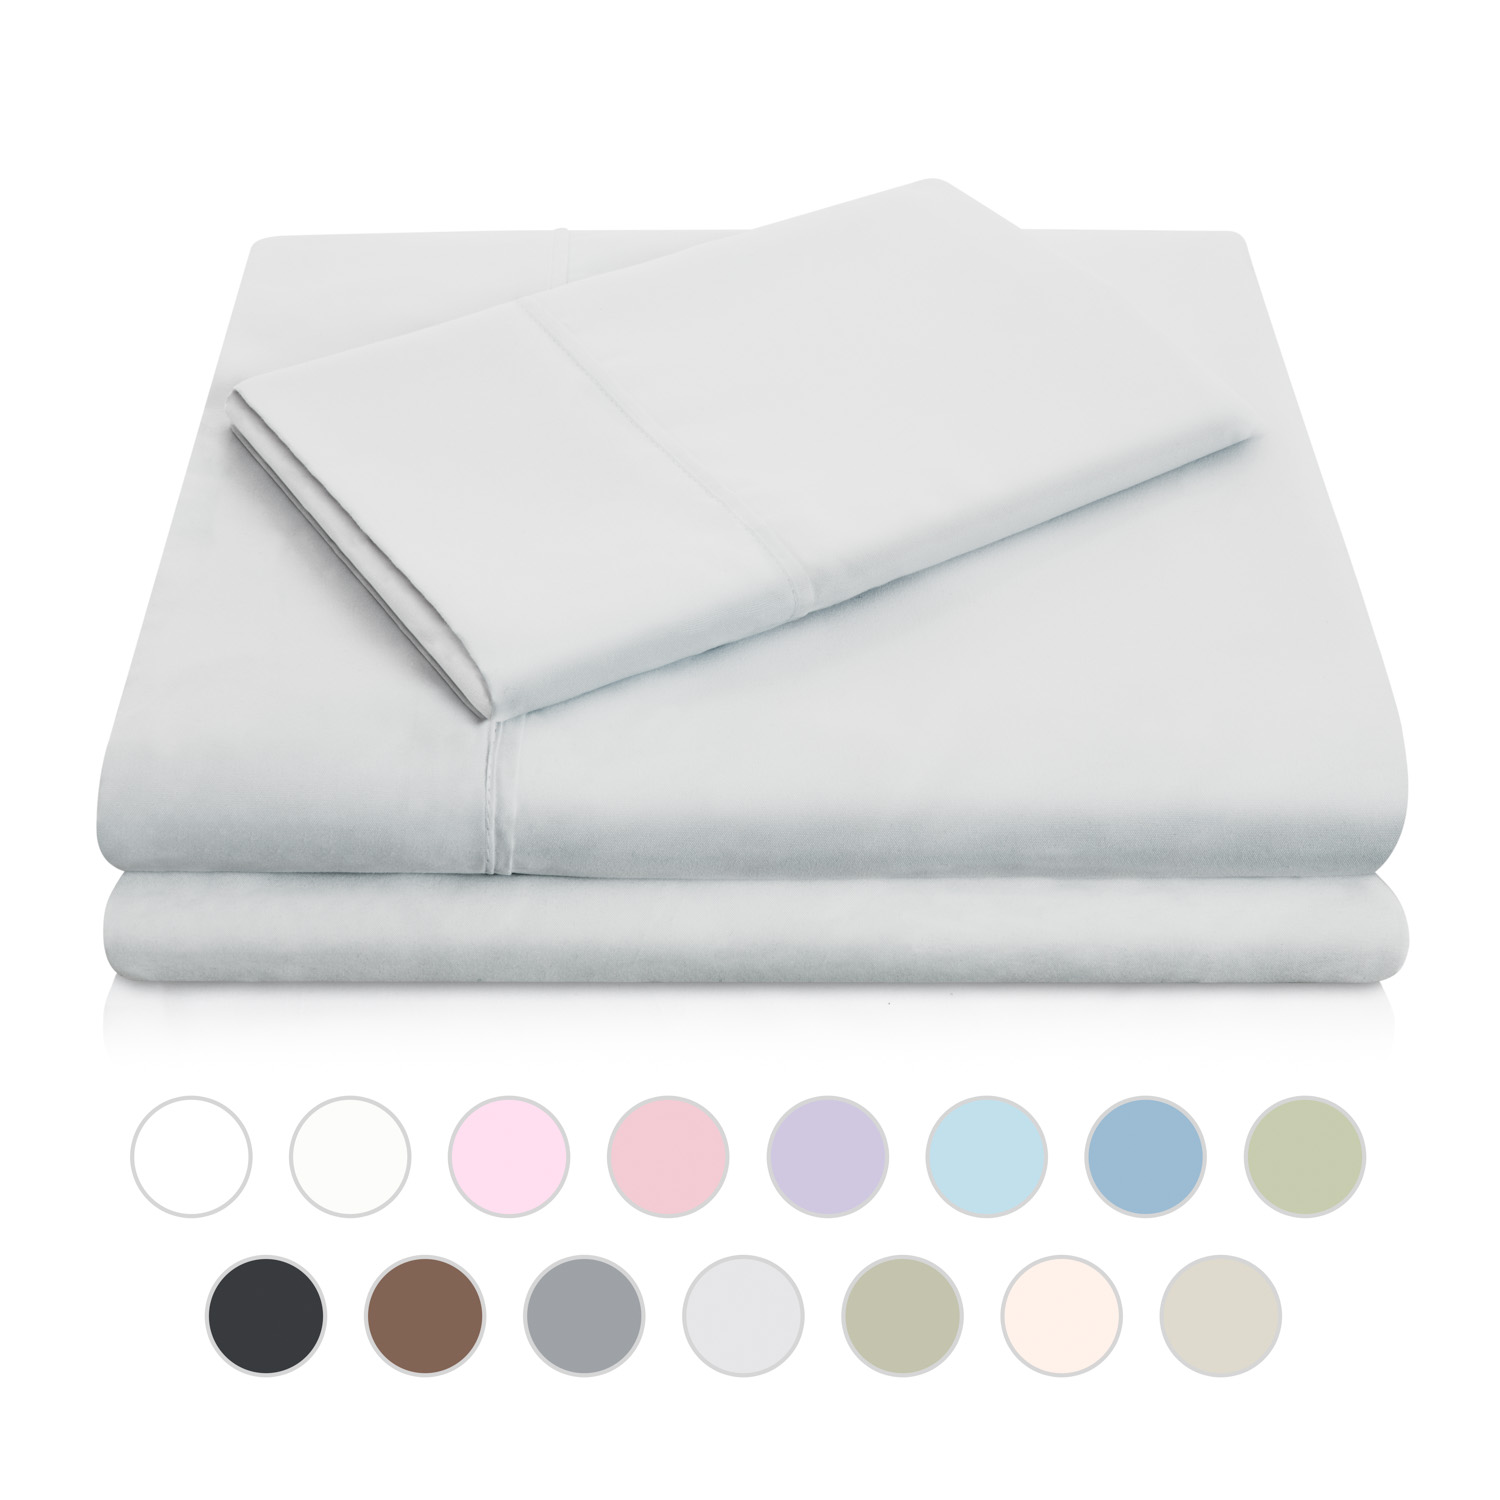 Woven Double Brushed Microfiber Sheet Set   Walmart.com